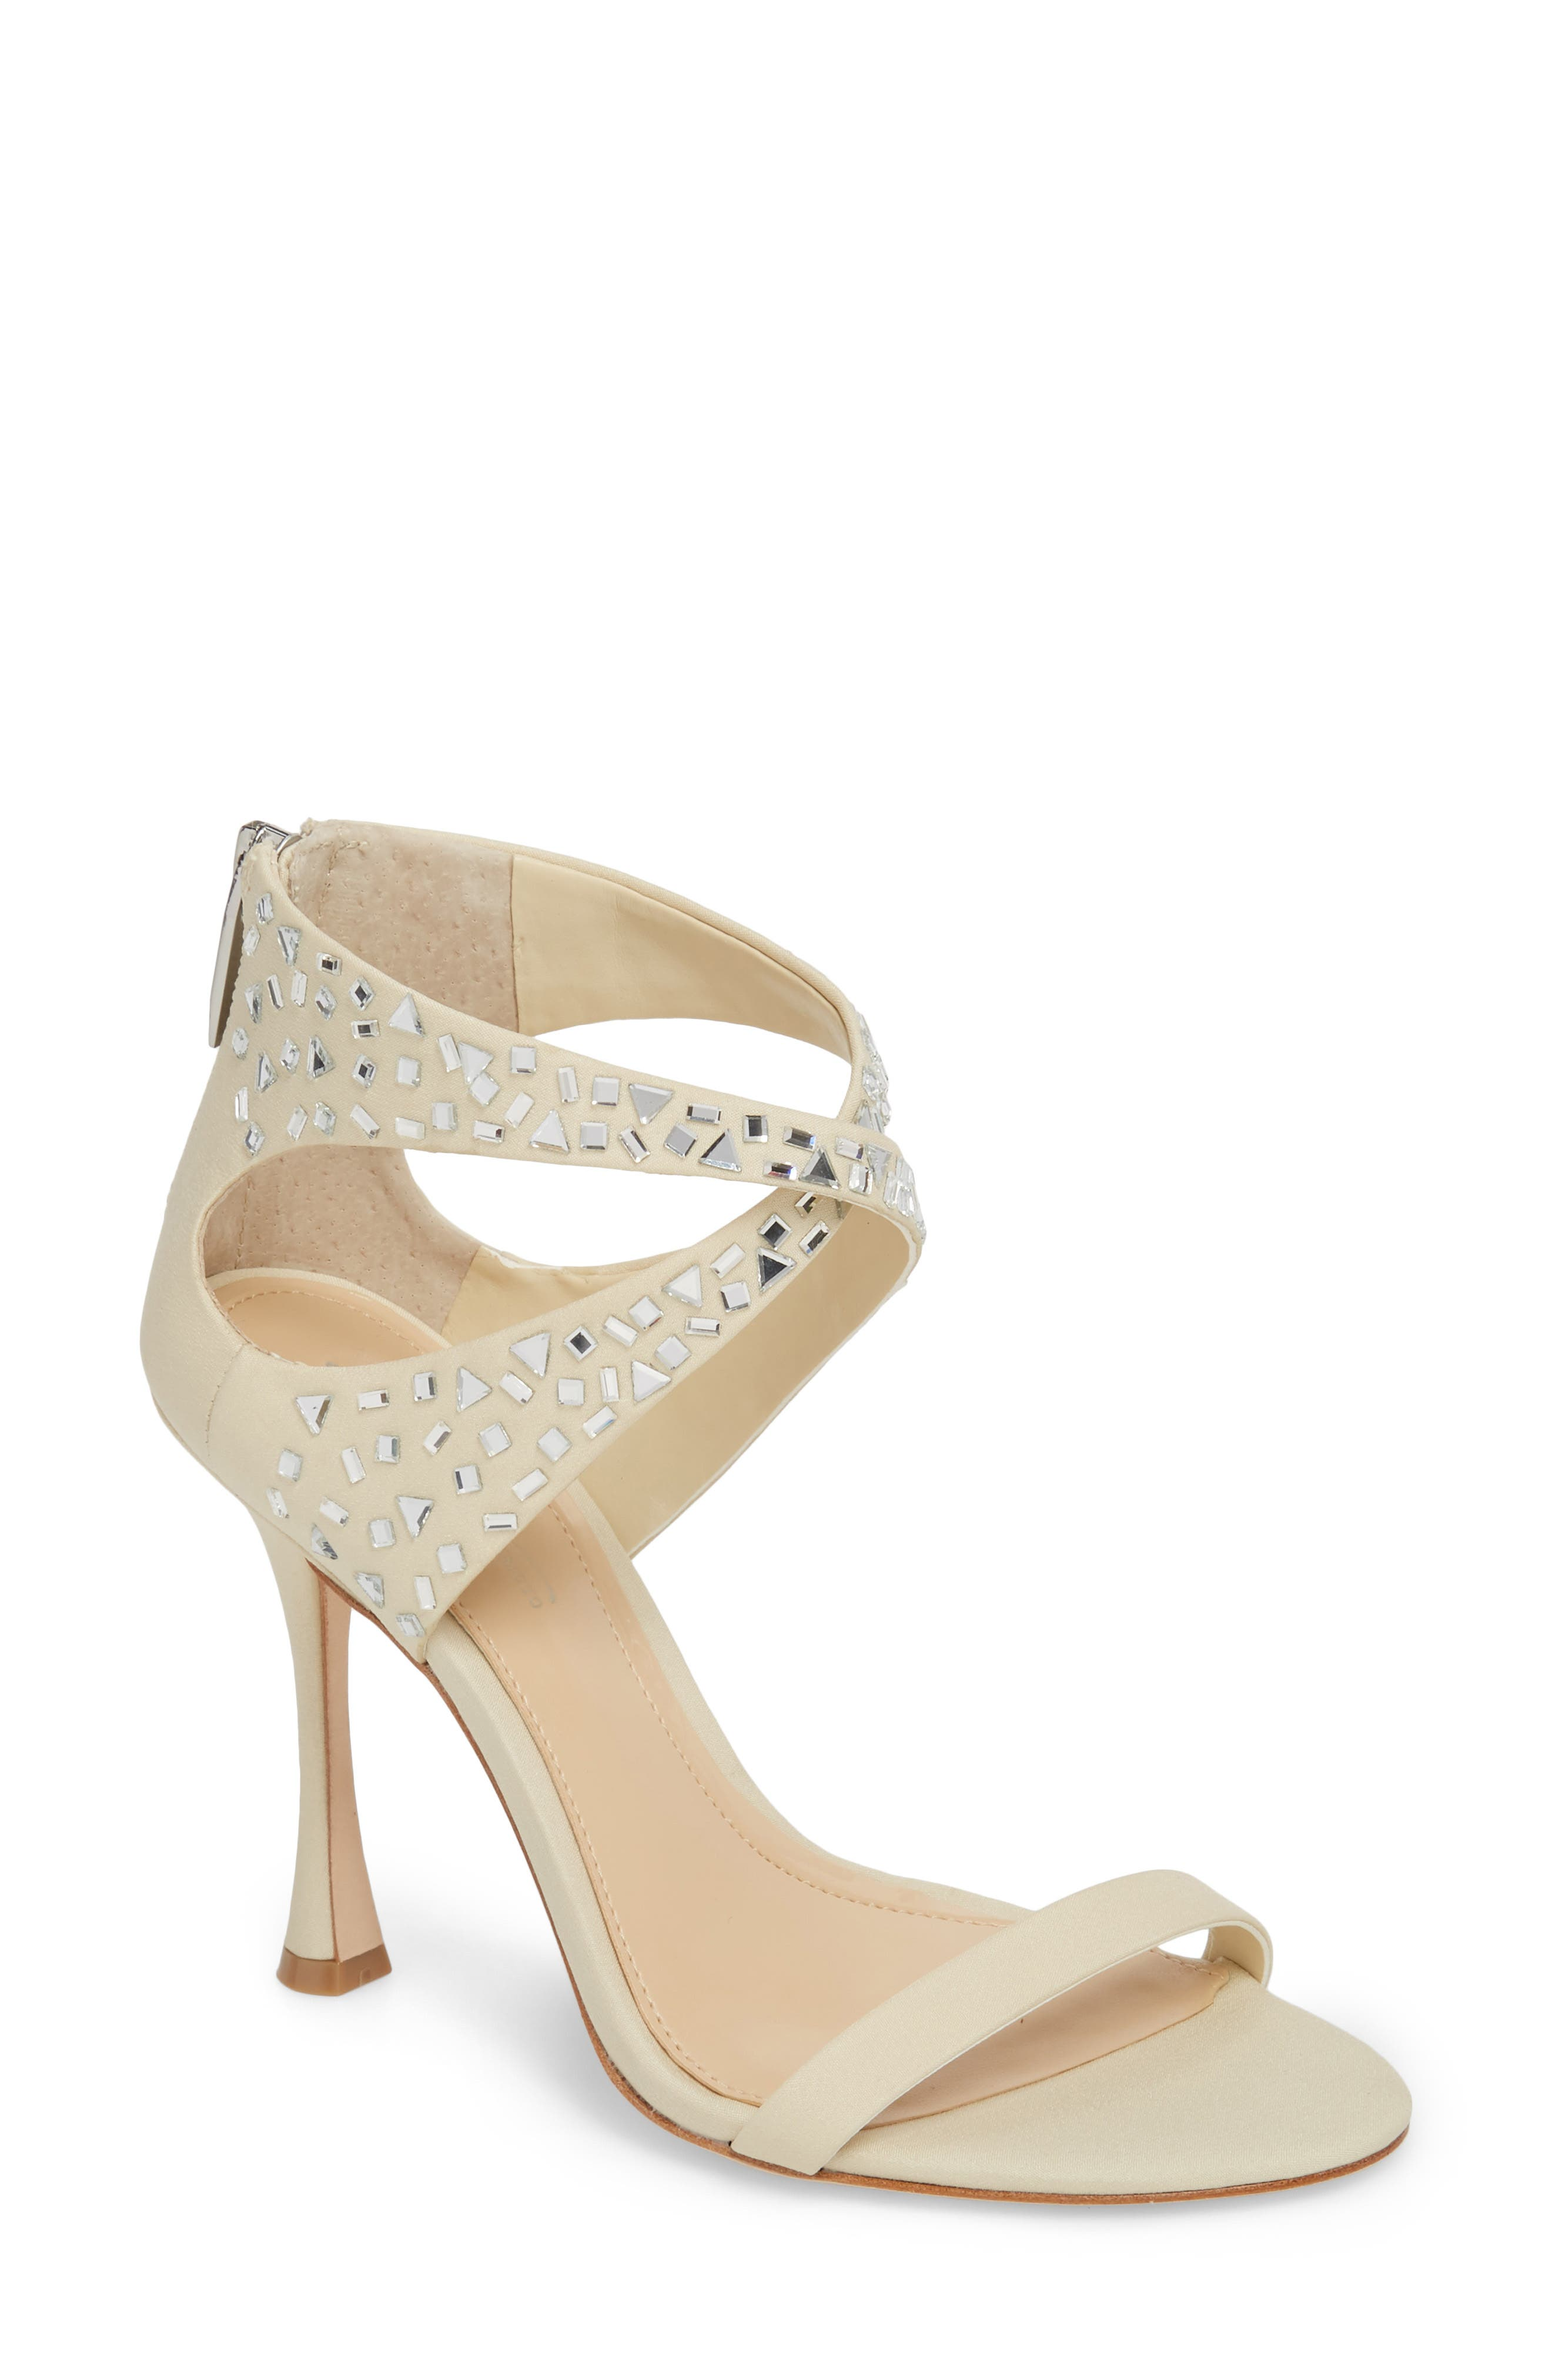 Imagine By Vince Camuto Ramel Sandal, Brown